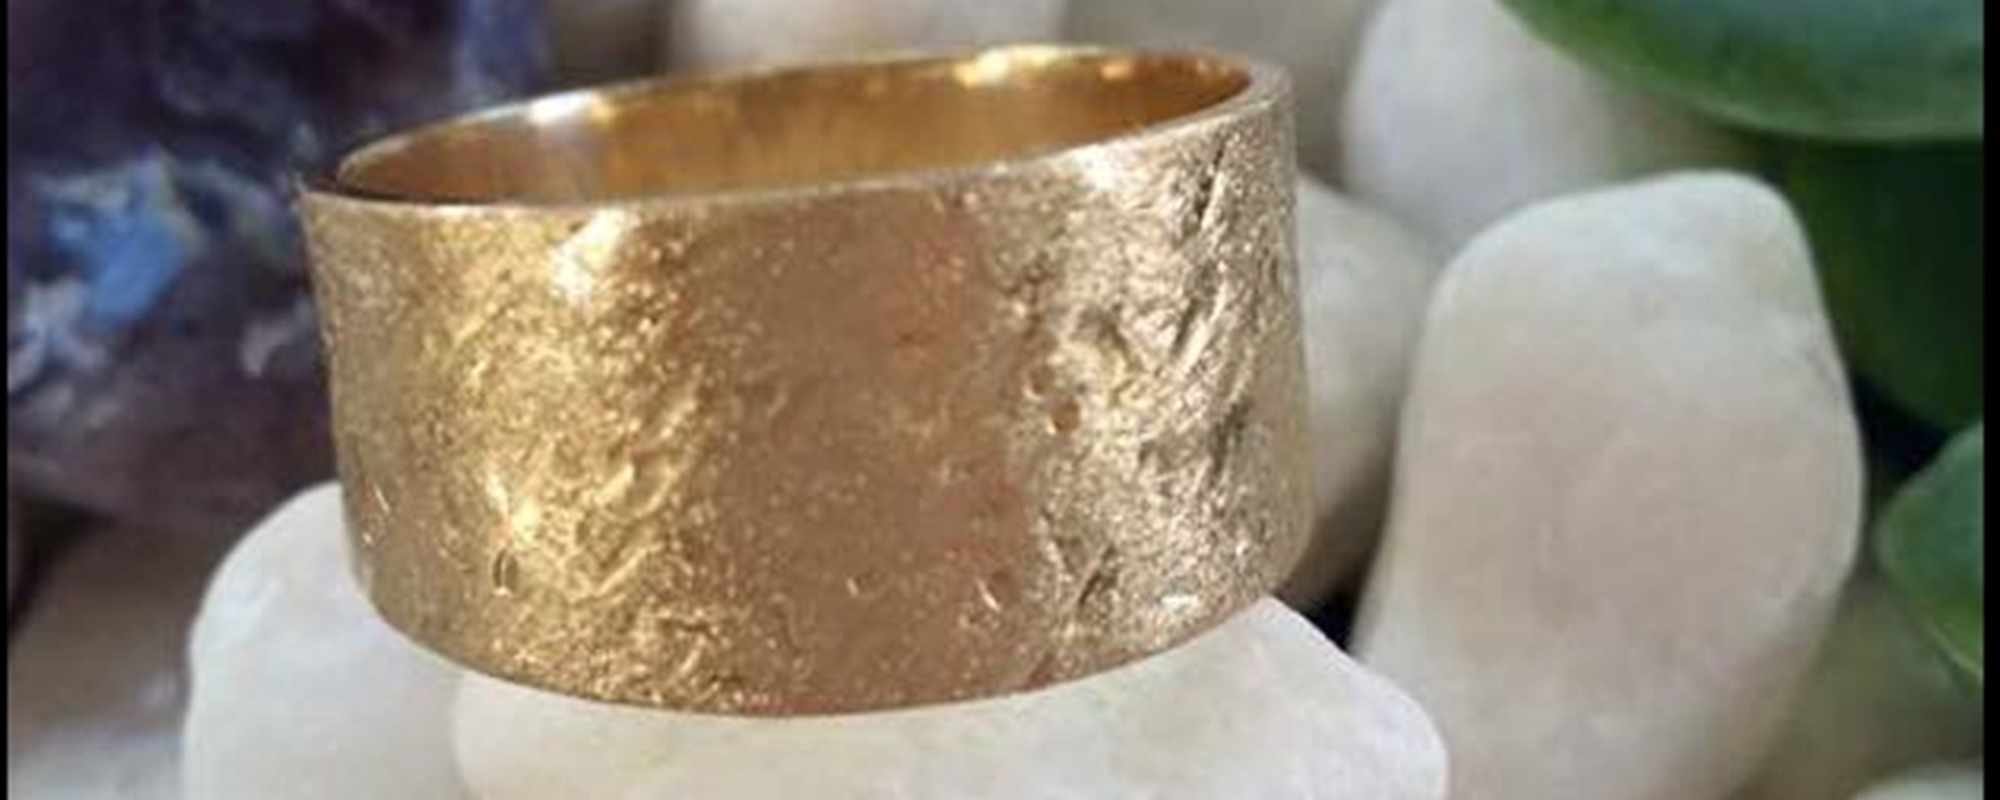 Gold Ring in Display